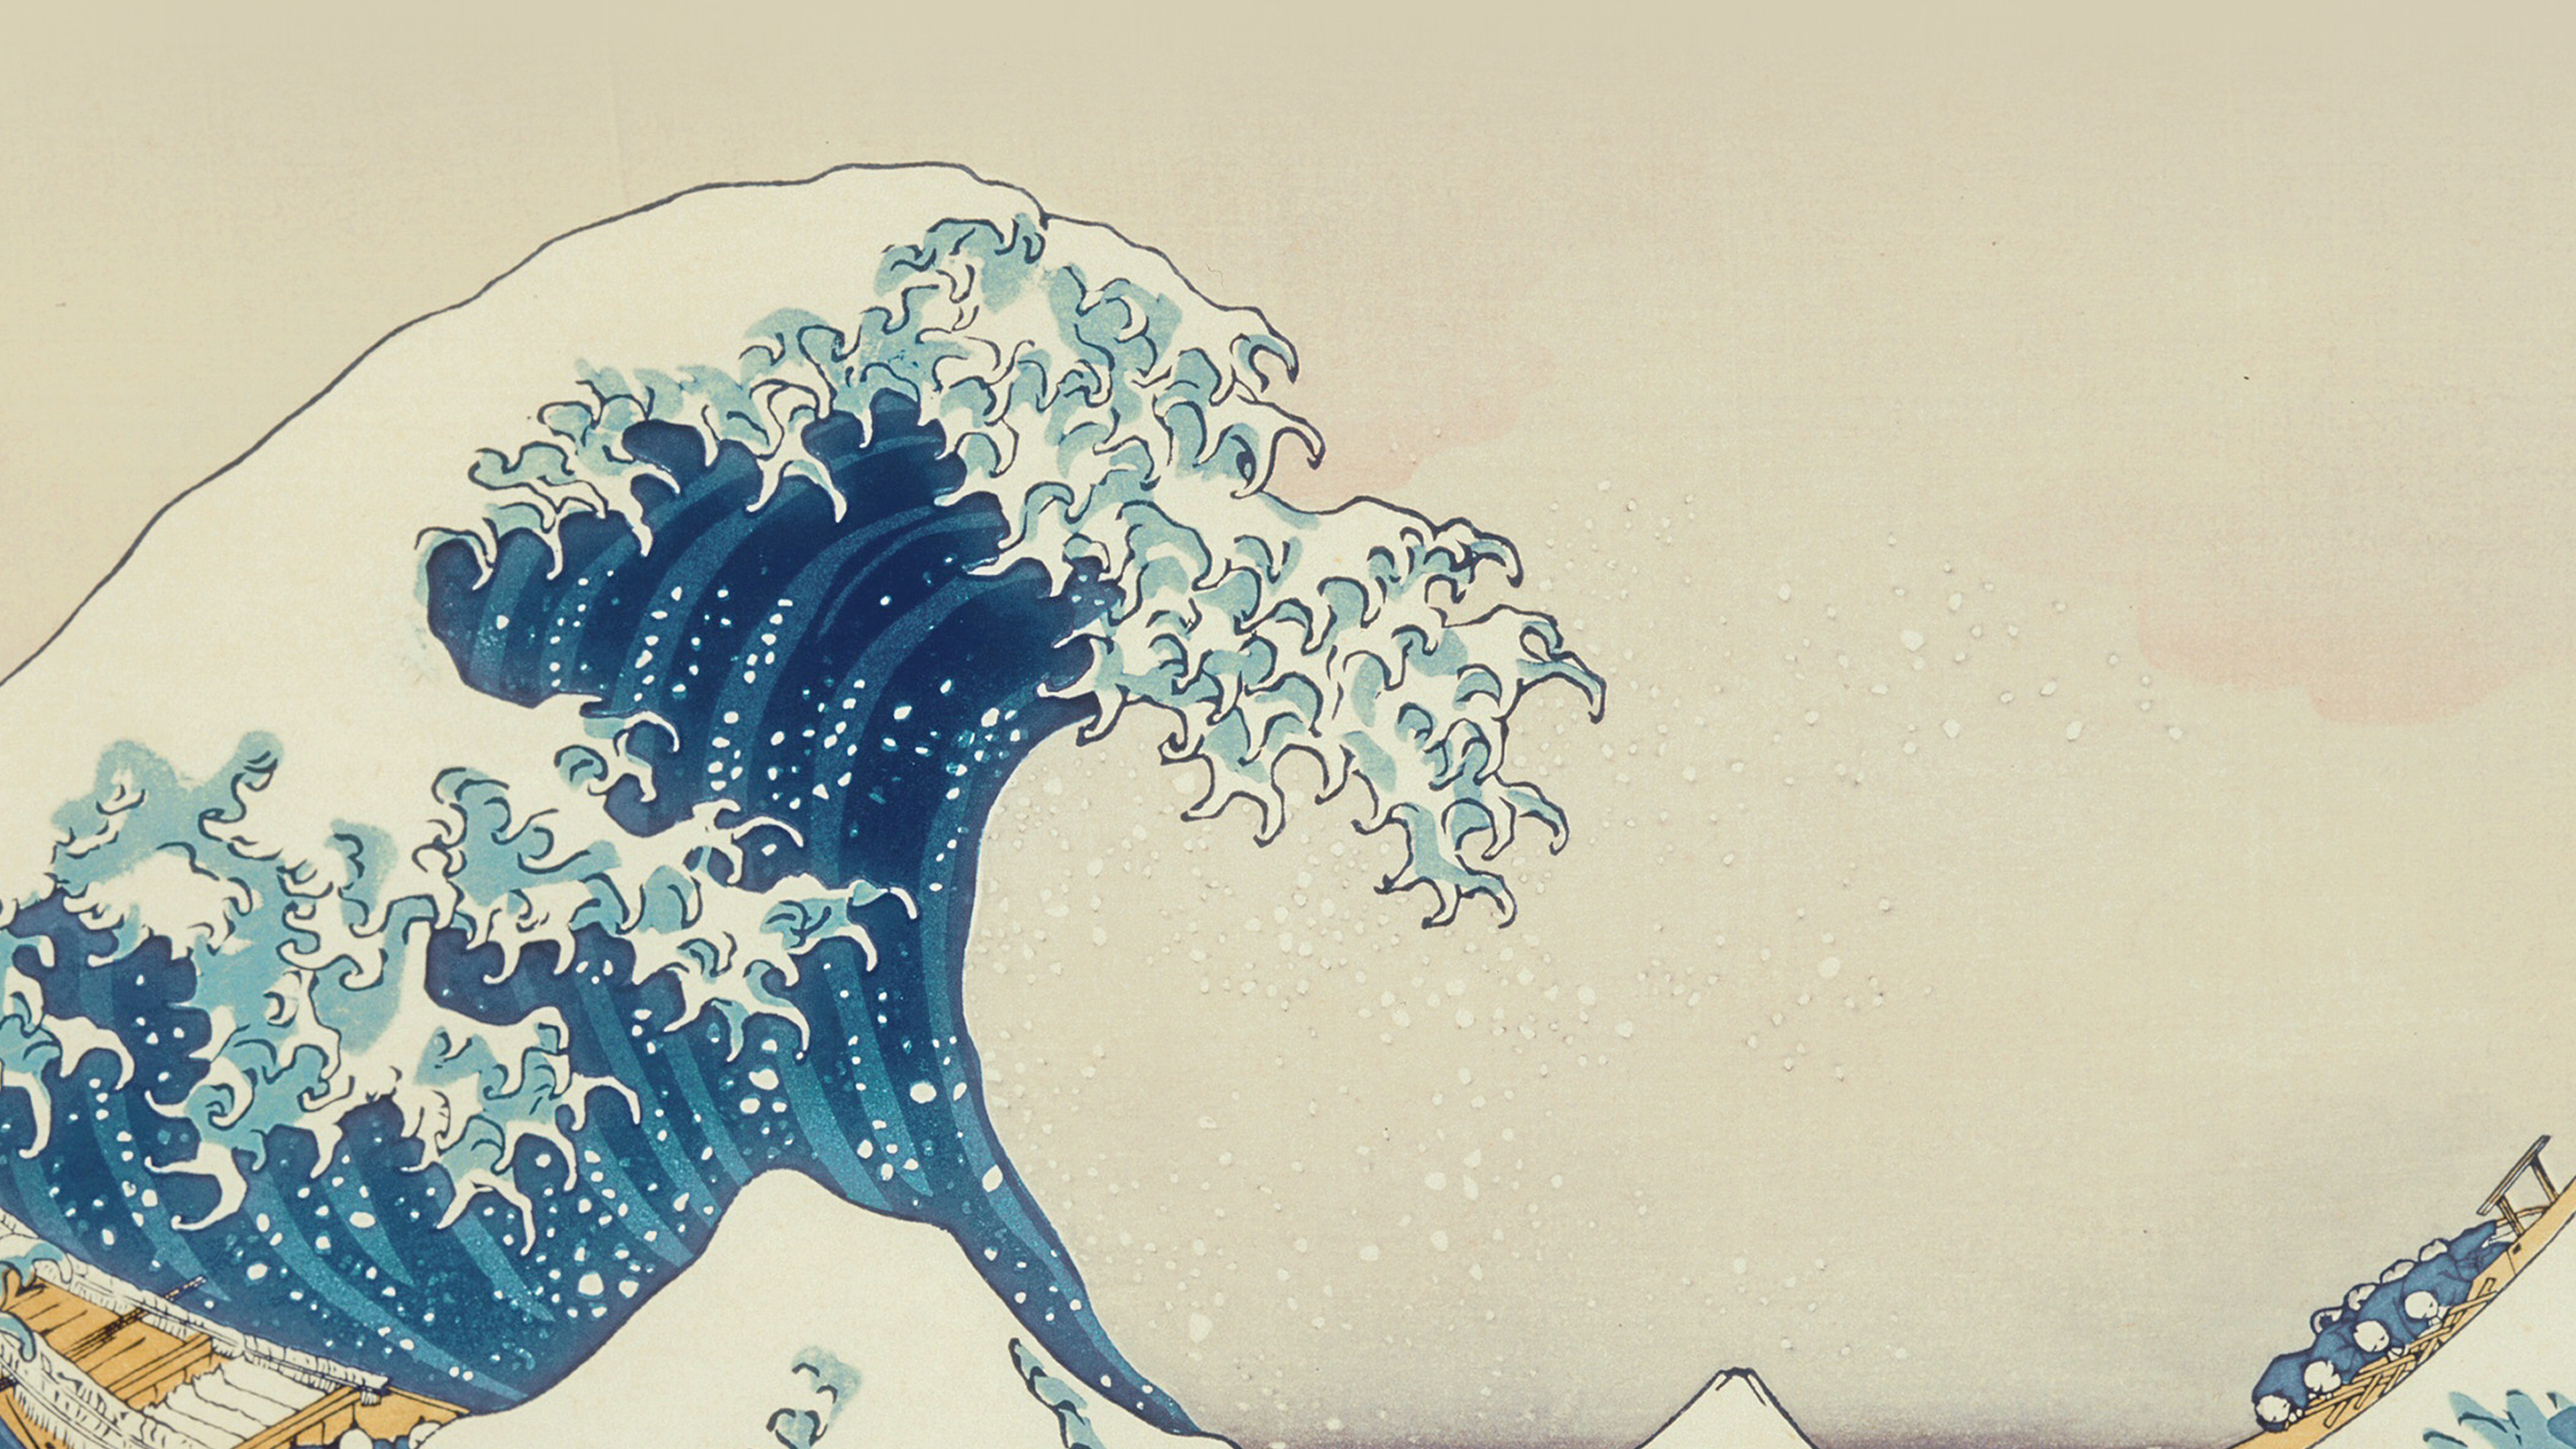 Fall Winter Iphone Wallpaper As11 Wave Art Hokusai Painting Classic Art Illustration